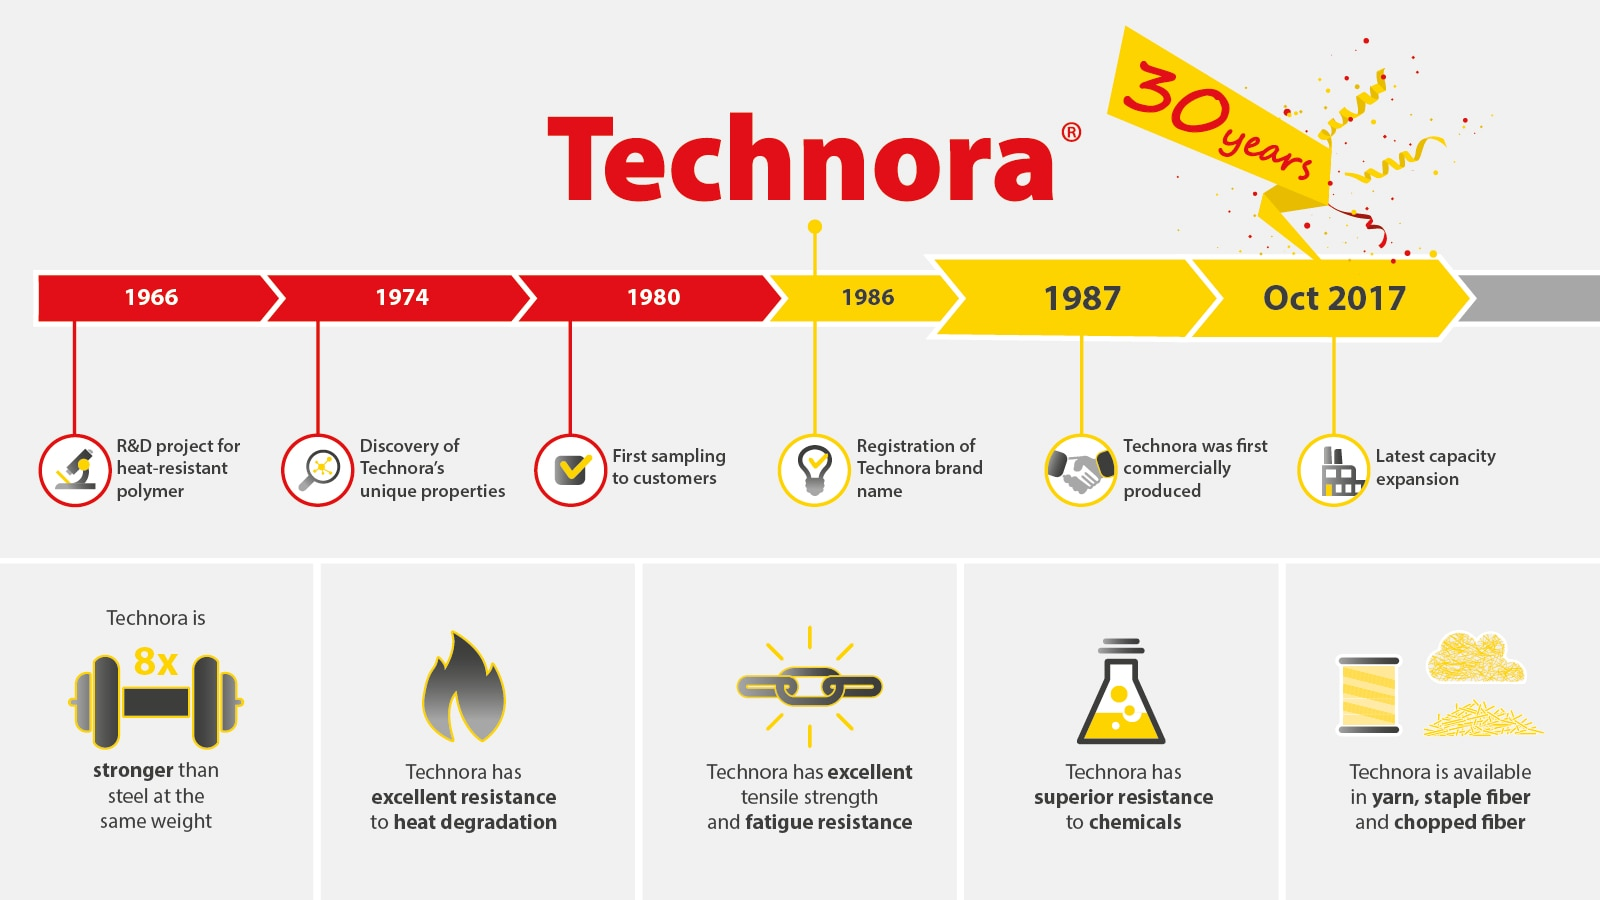 Technora 30 years